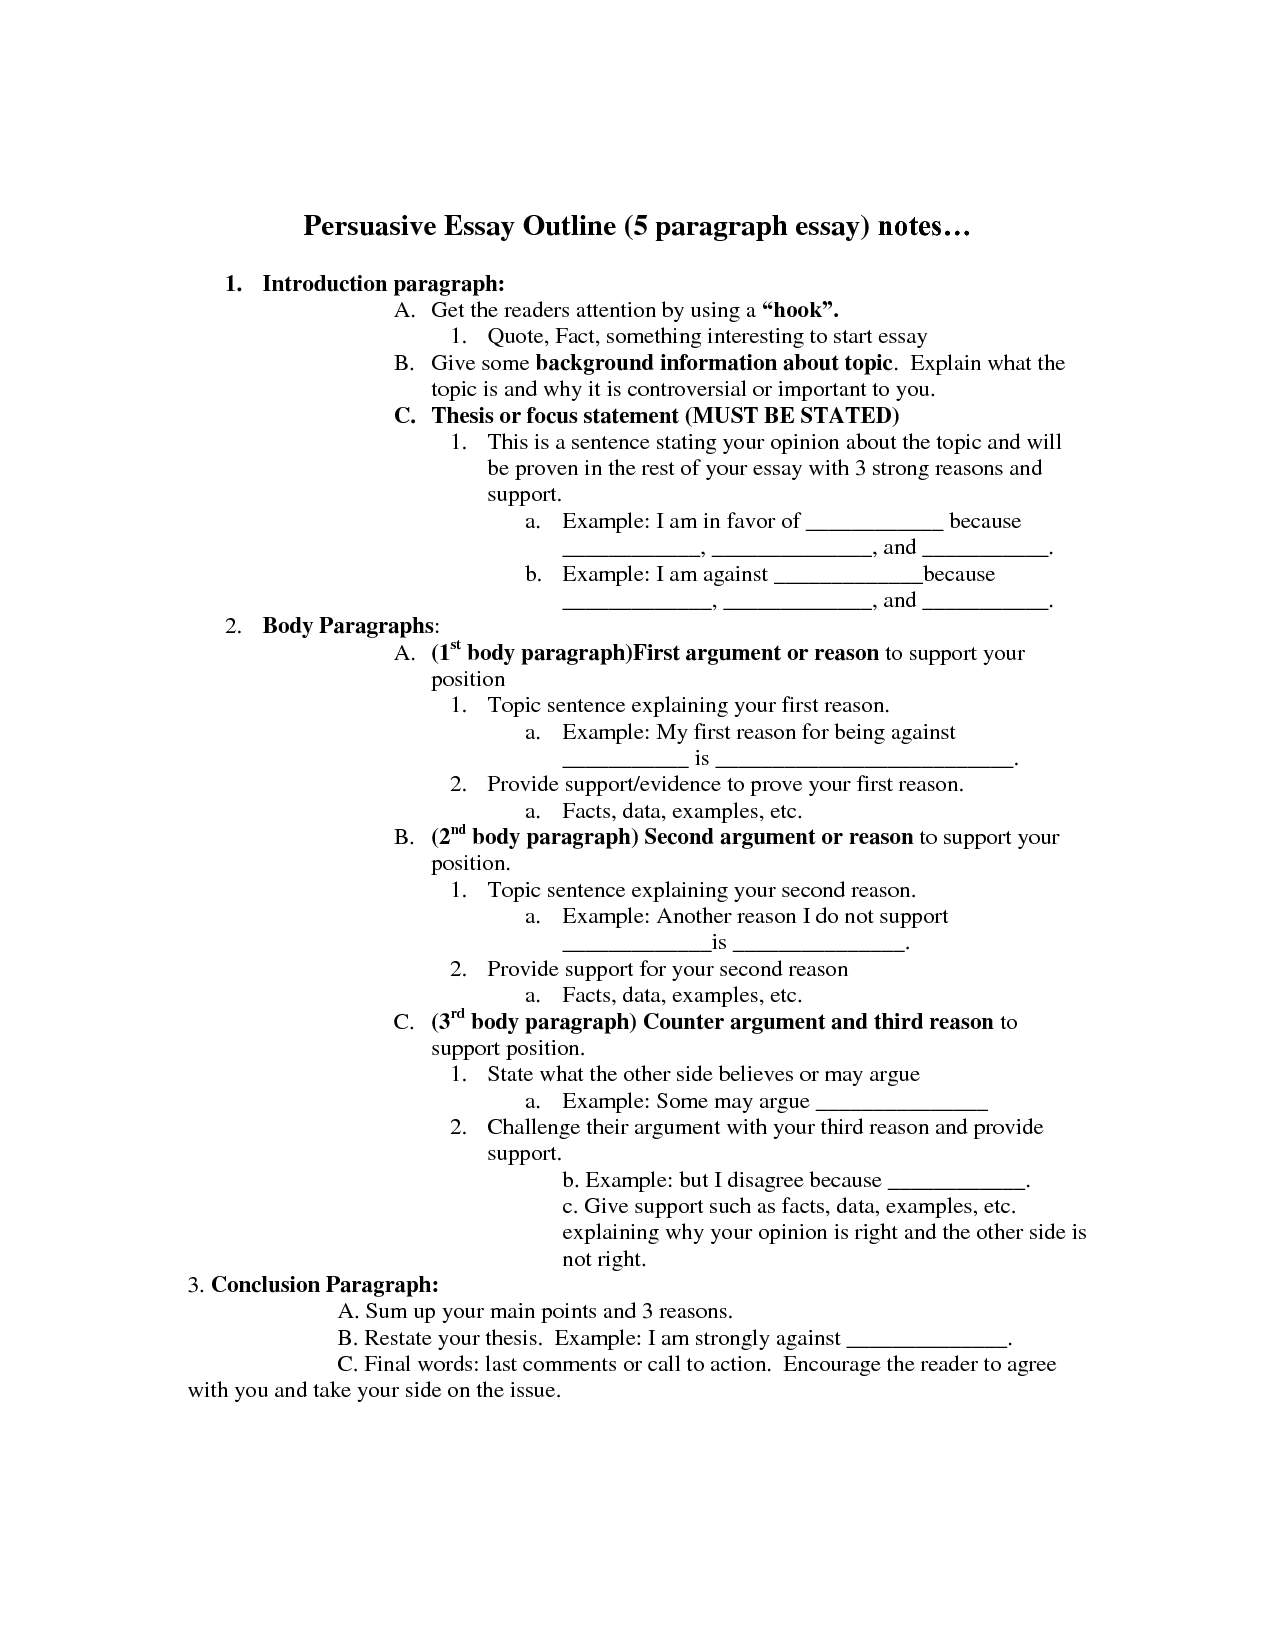 006 Persuasive Essay Outline Unbelievable Argumentative 5th Grade Template Pdf Full